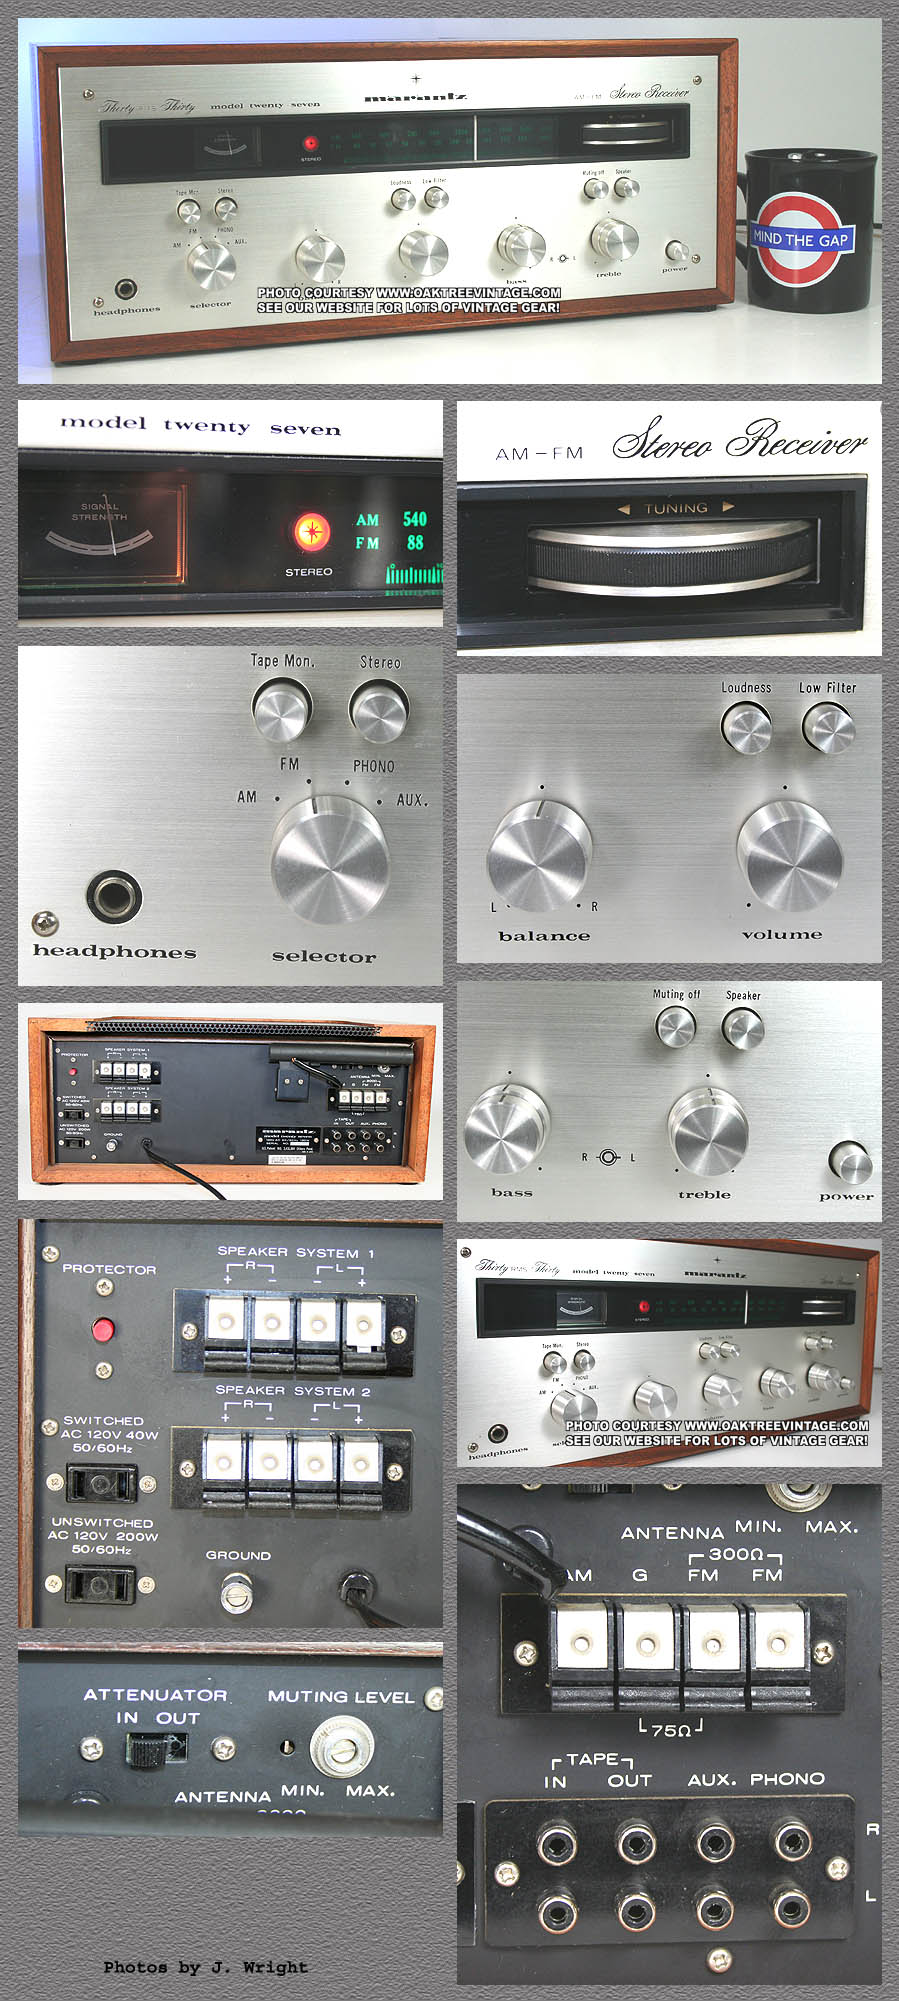 Vintage Marantz Stereo Receivers Photo Gallery